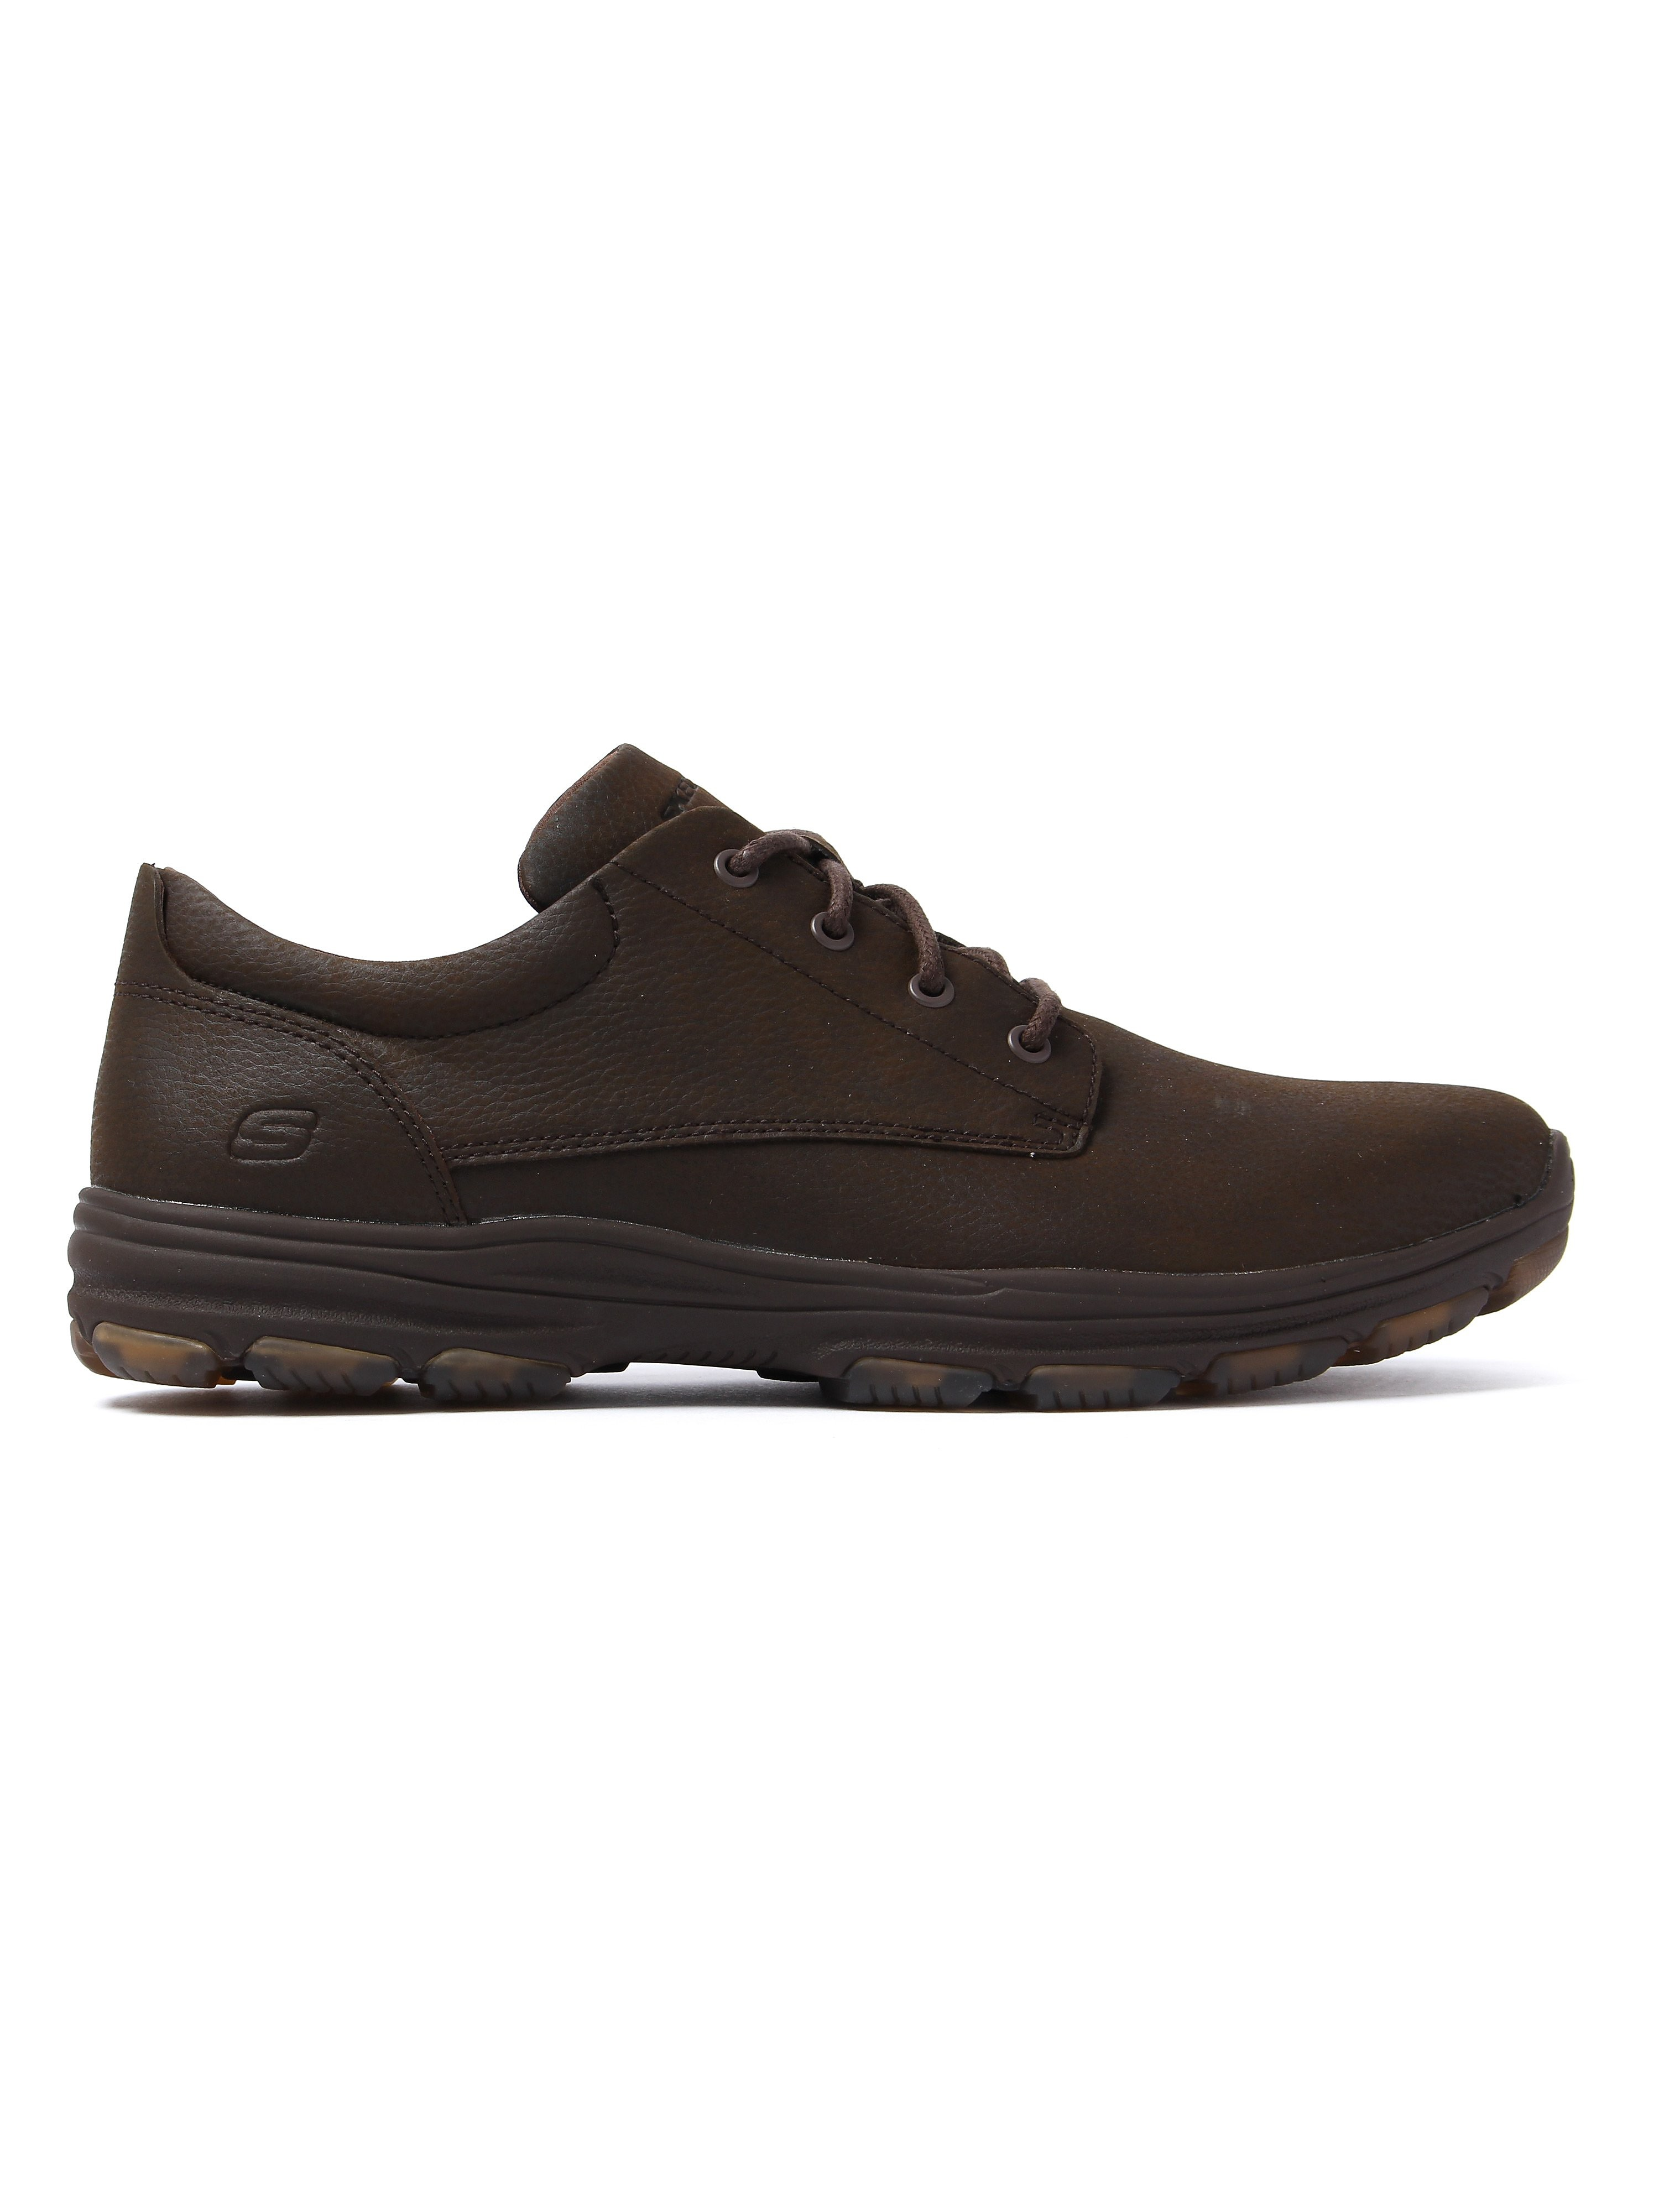 Skechers Men's Garton Modesto Shoes - Cocoa Leather